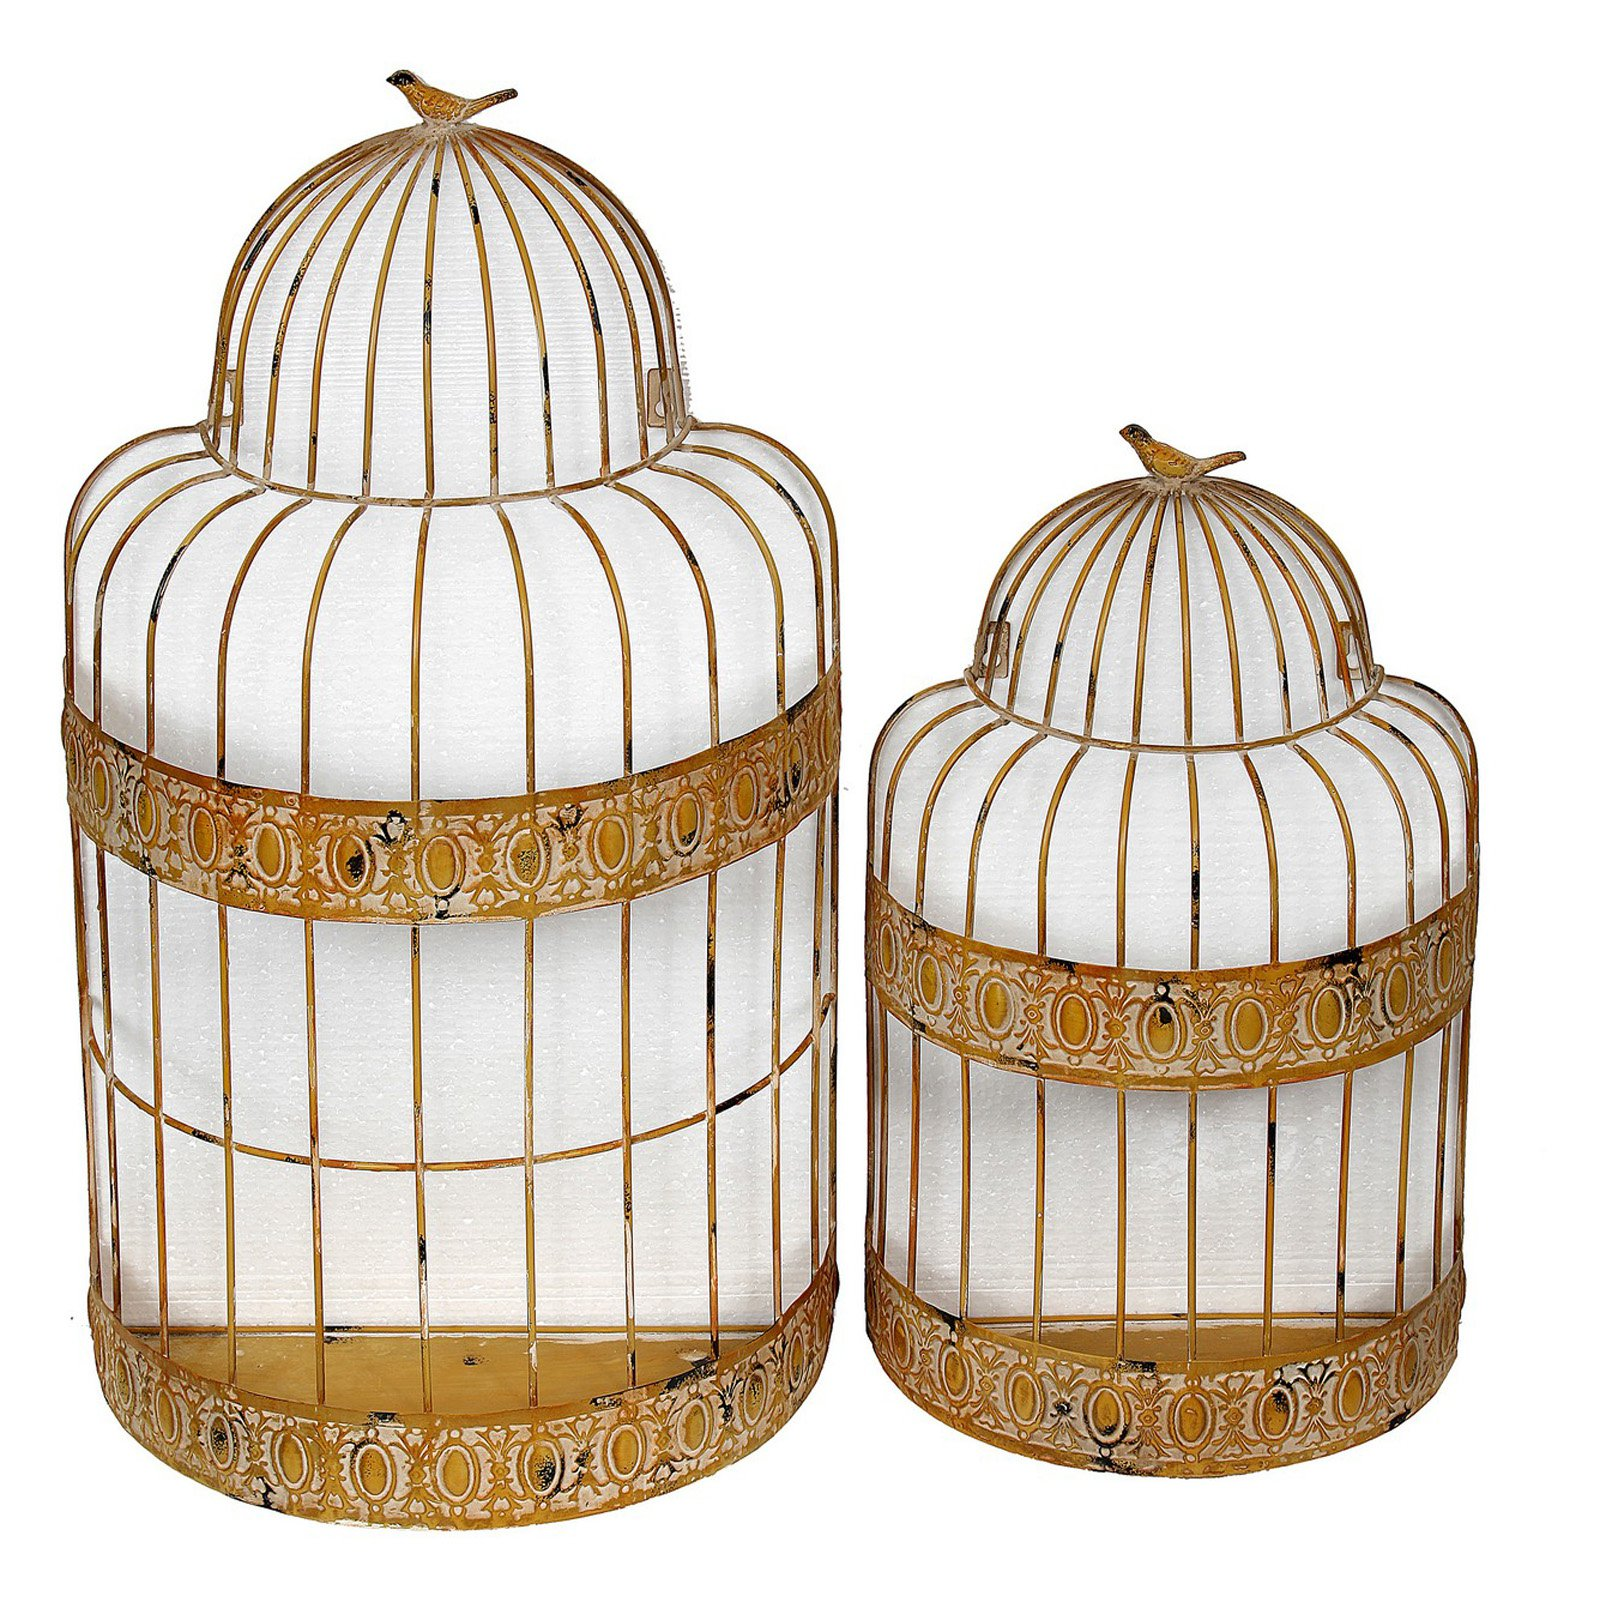 Privilege International Bird Cage Wall Decor - Set of 2